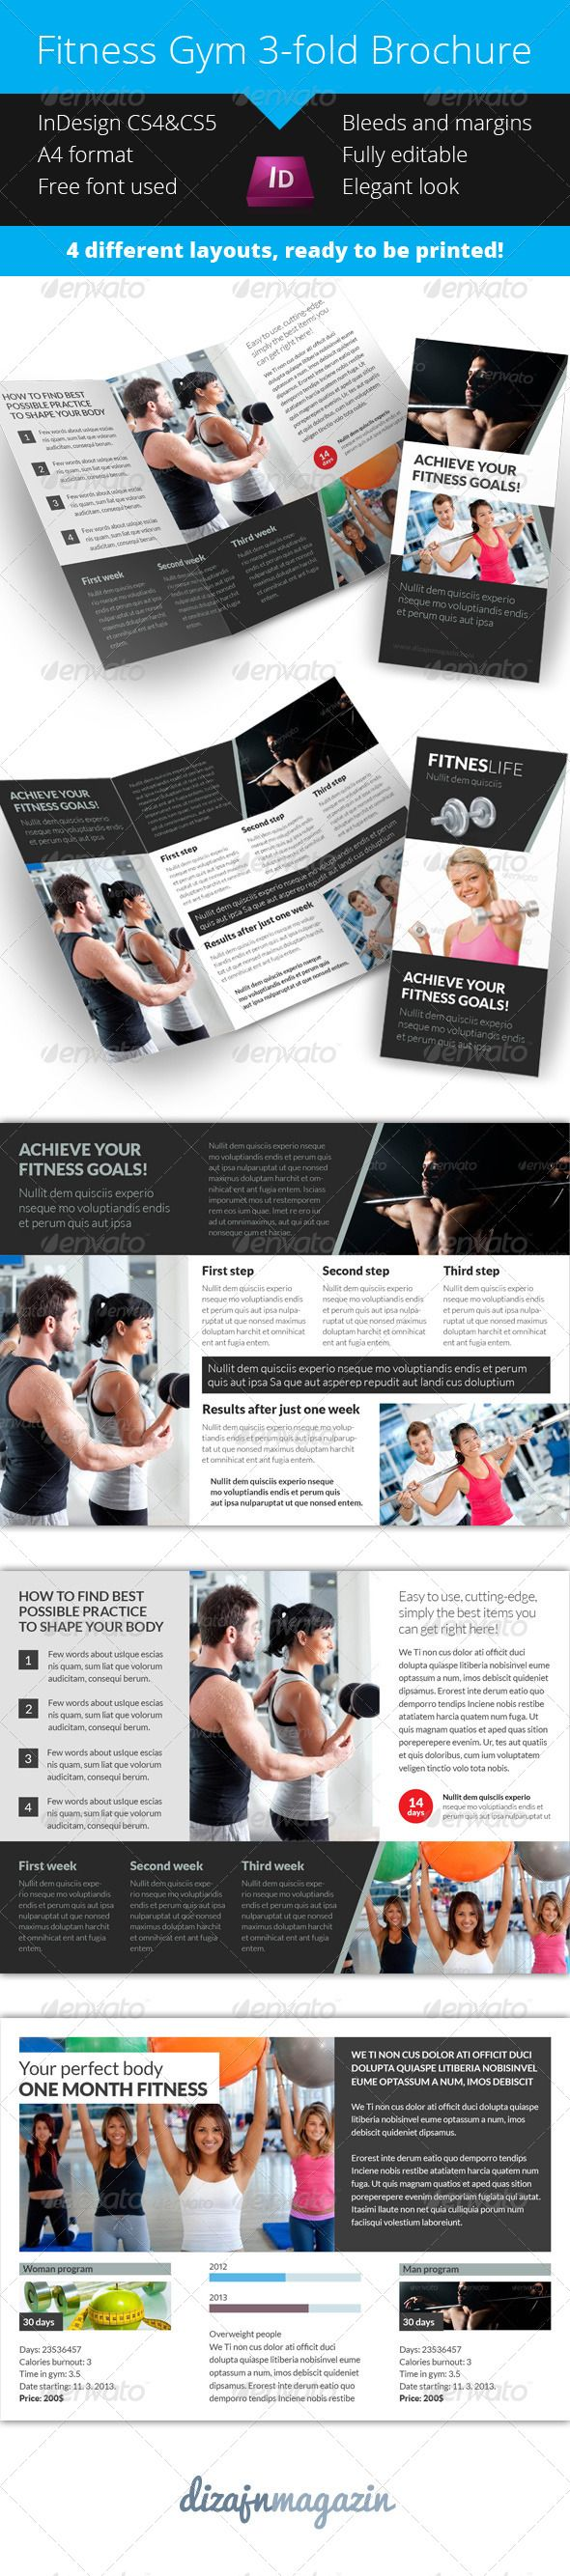 92 best images about print templates on pinterest for Tri fold brochure template indesign cs6